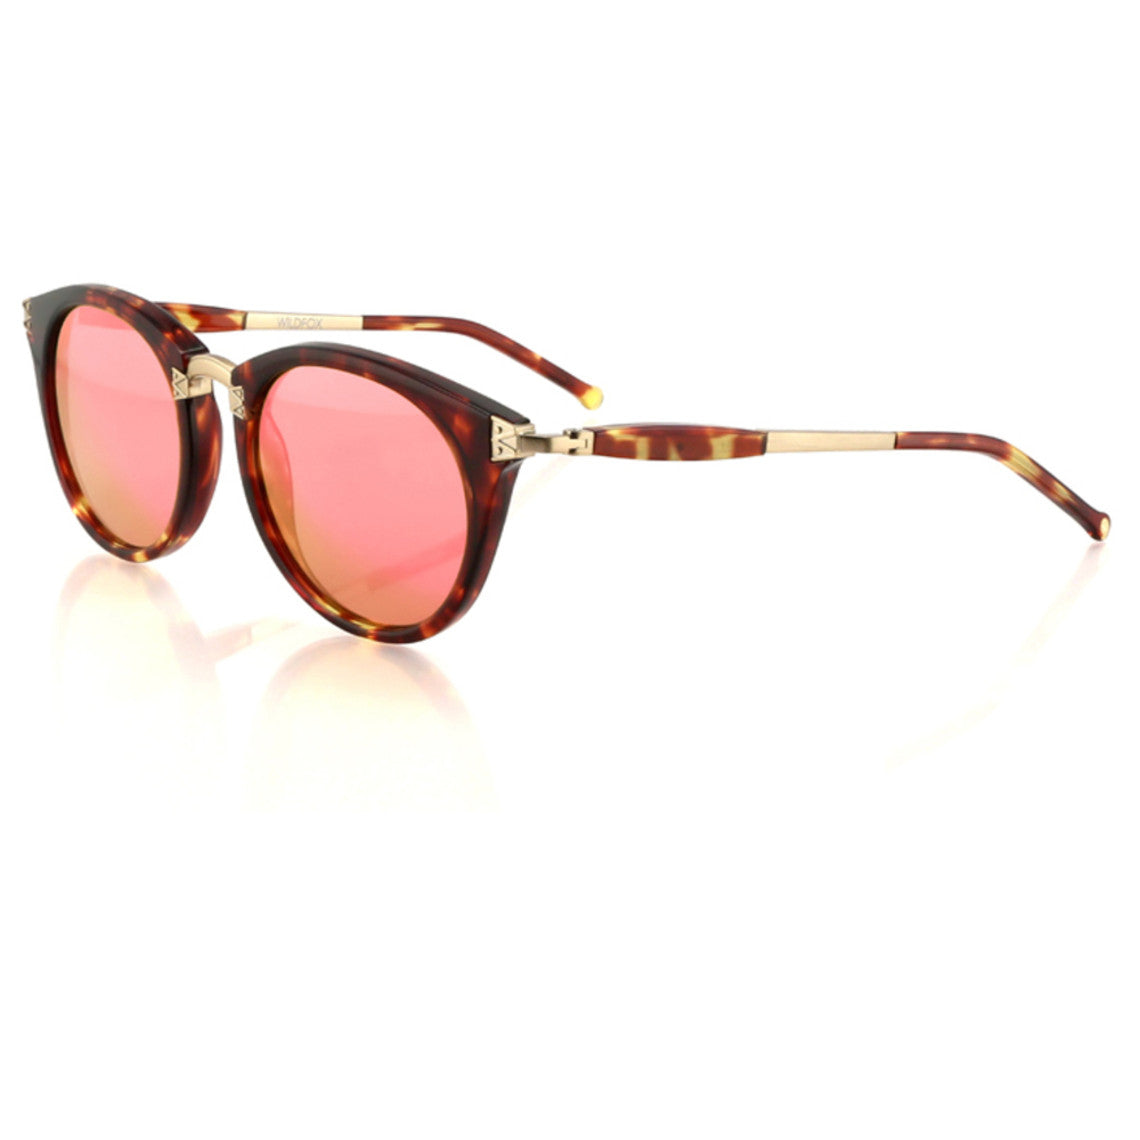 f0357bf0f2 Sunset Deluxe Sunglasses